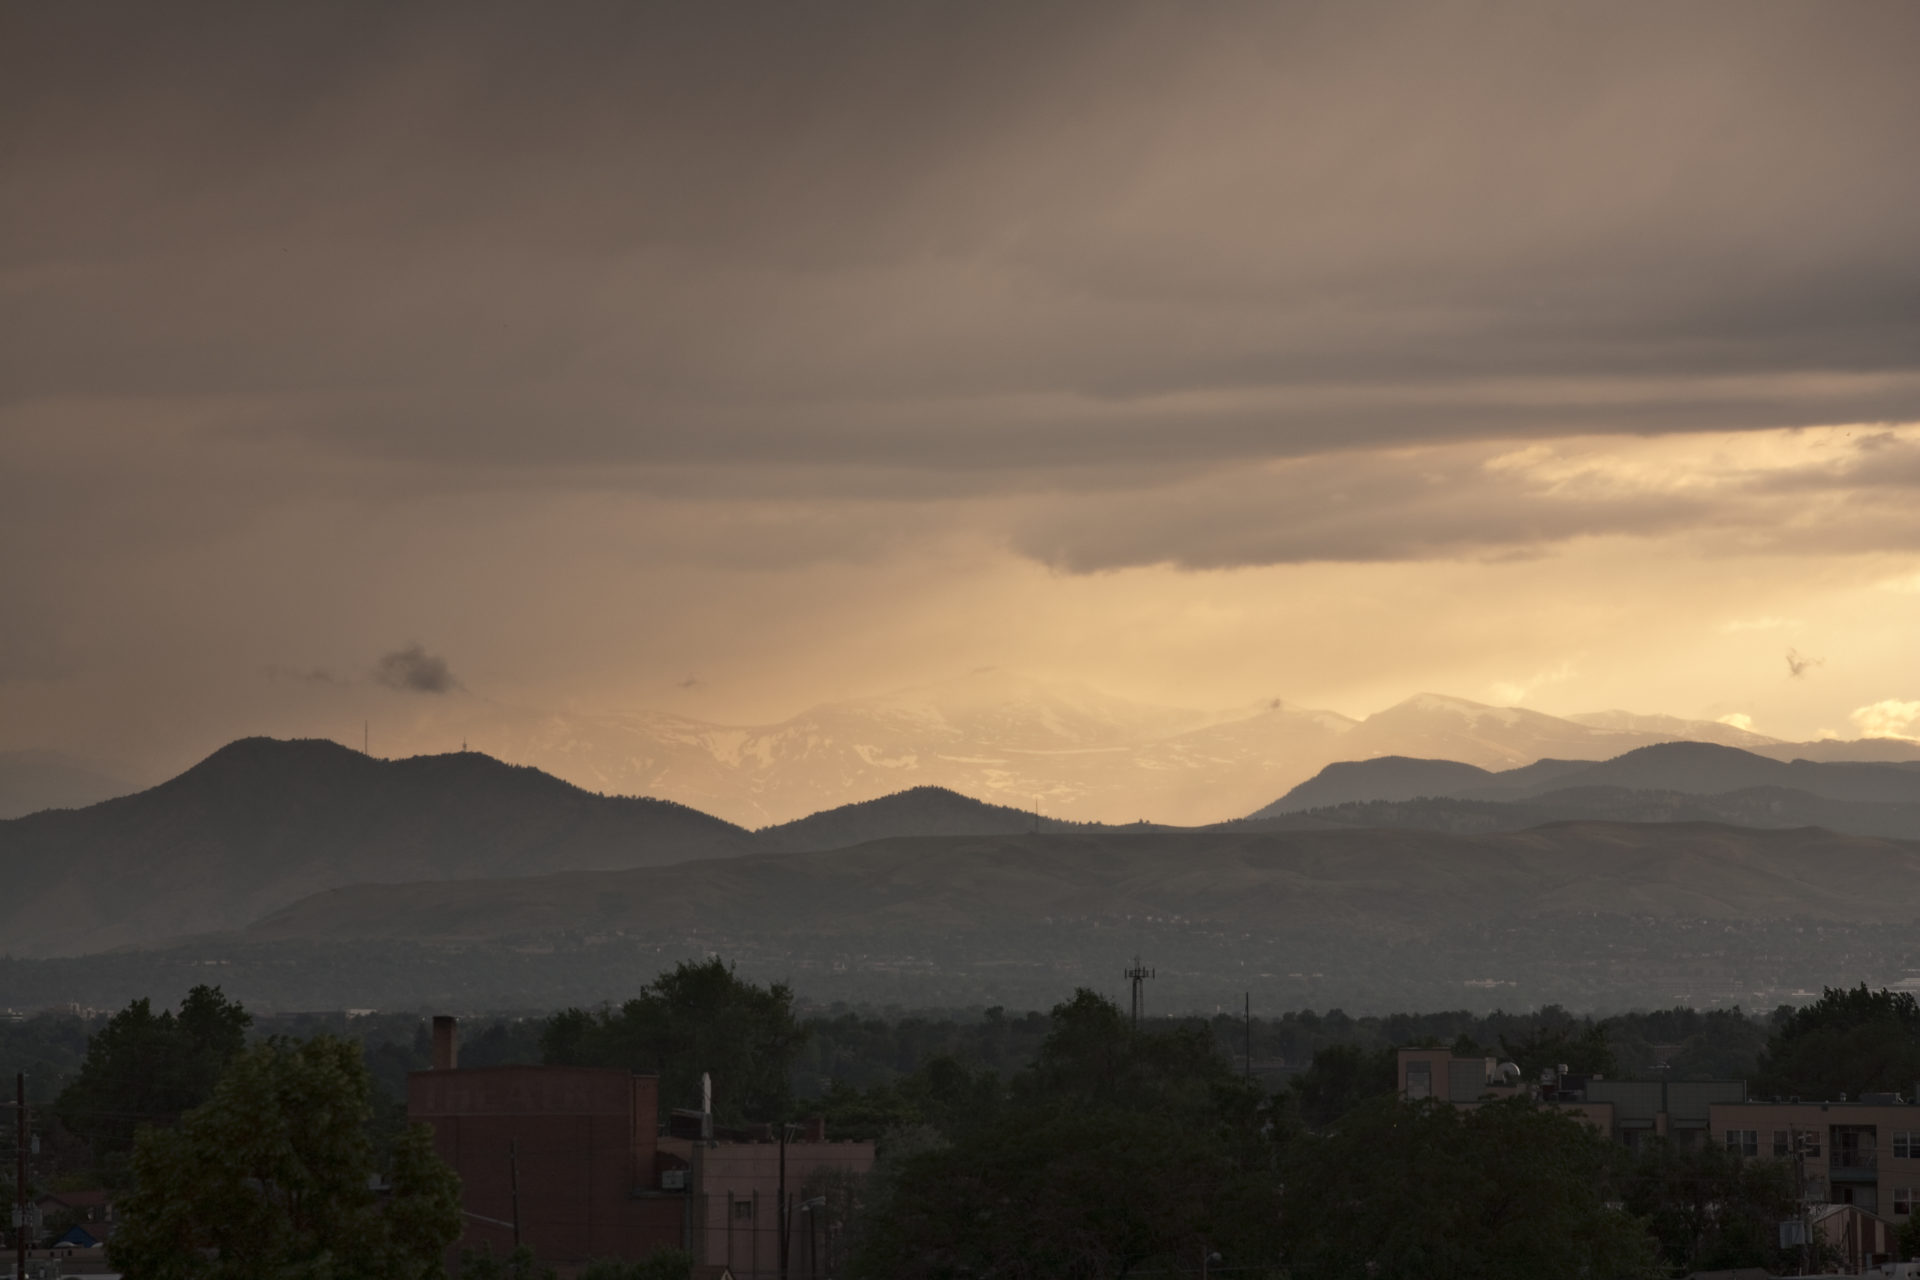 Mount Evans sunset - June 19, 2011